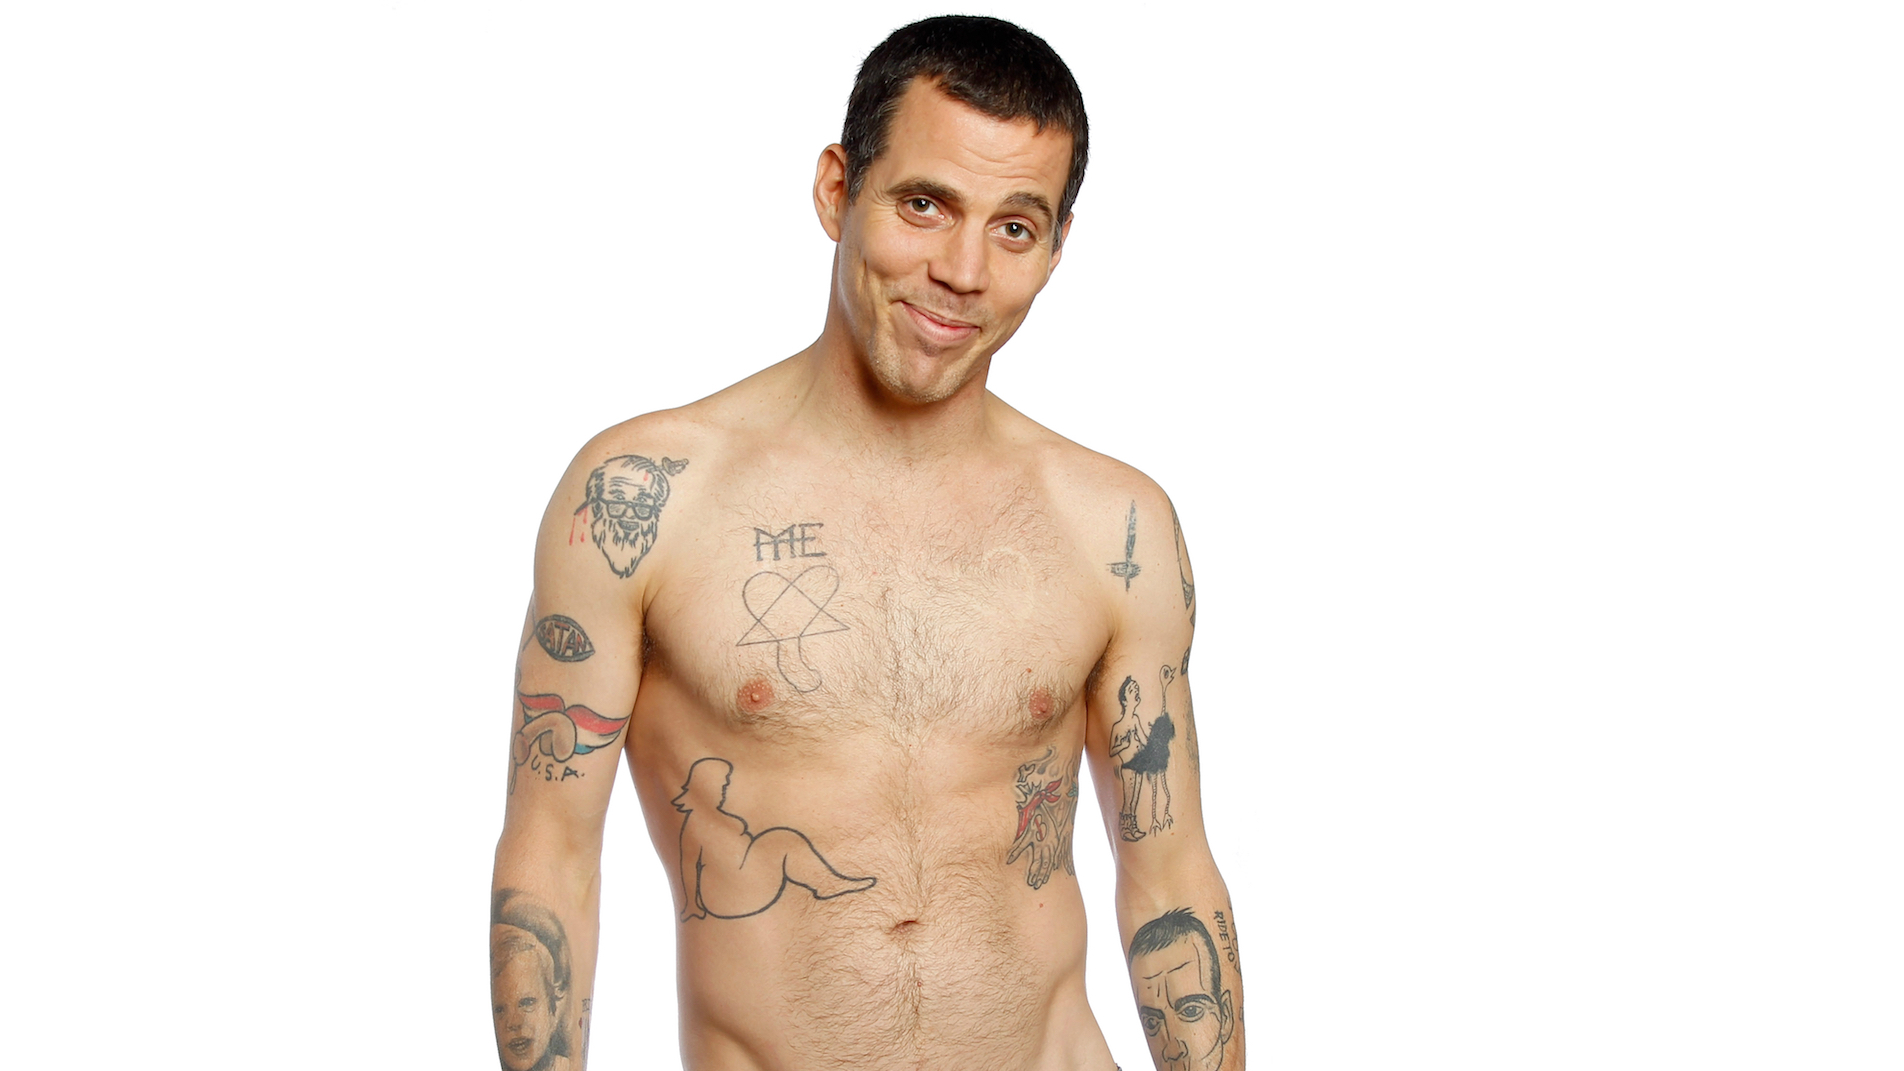 Showing images for steve o jackass naked xxx